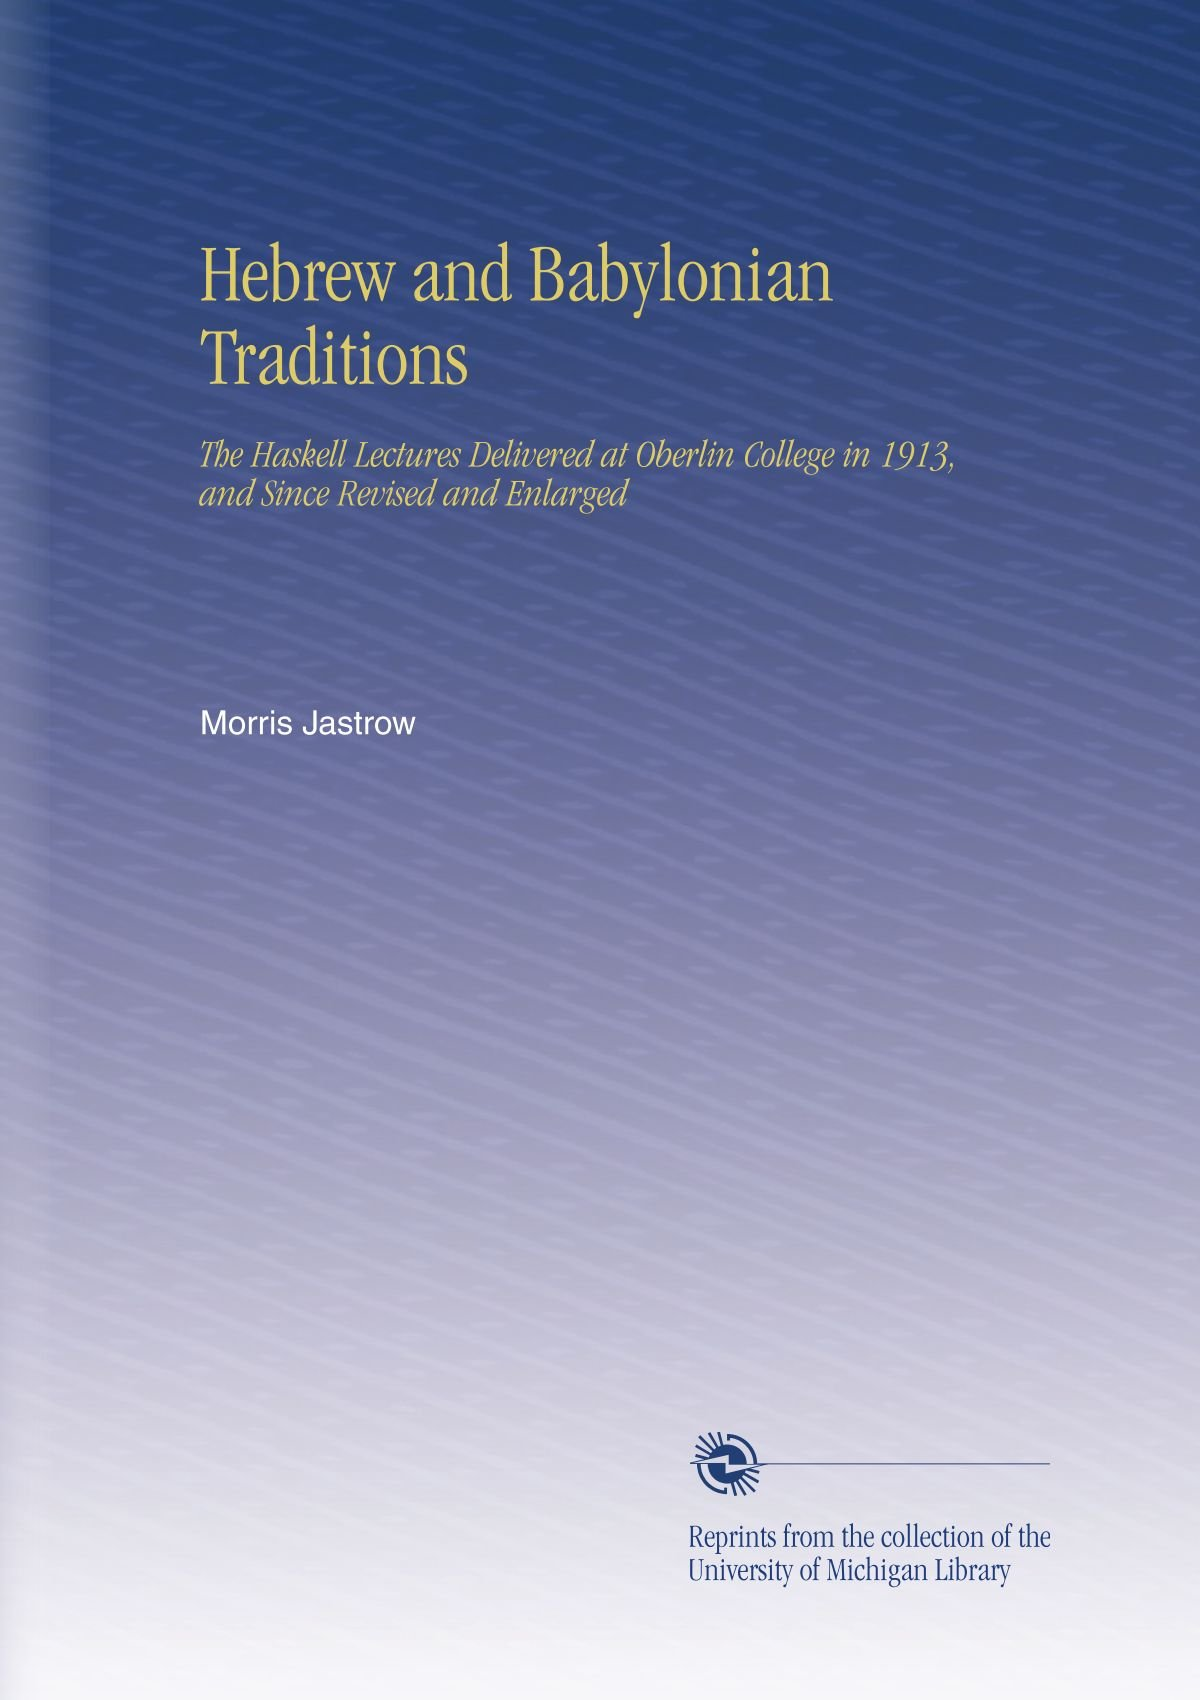 Download Hebrew and Babylonian Traditions: The Haskell Lectures Delivered at Oberlin College in 1913, and Since Revised and Enlarged ebook